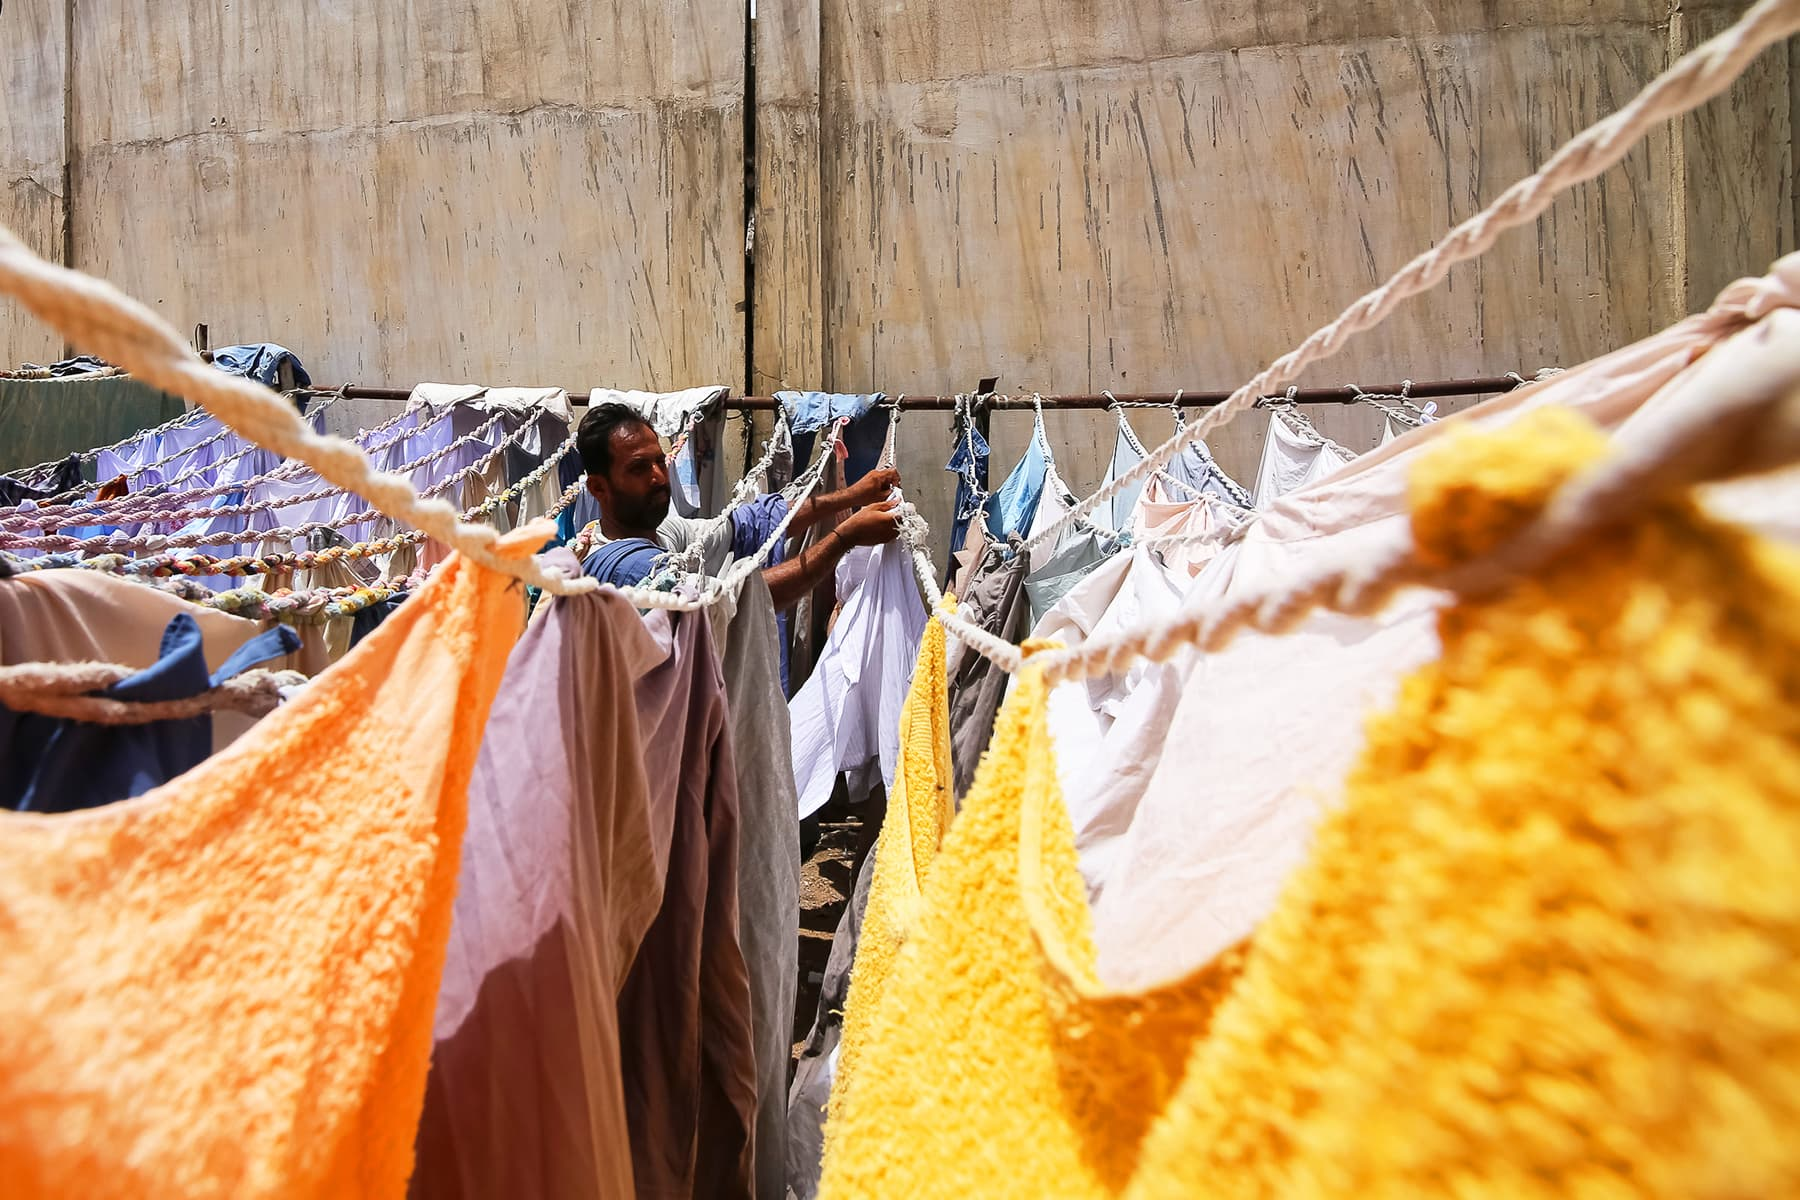 A dhobi puts up laundered clothes for drying in the sun.